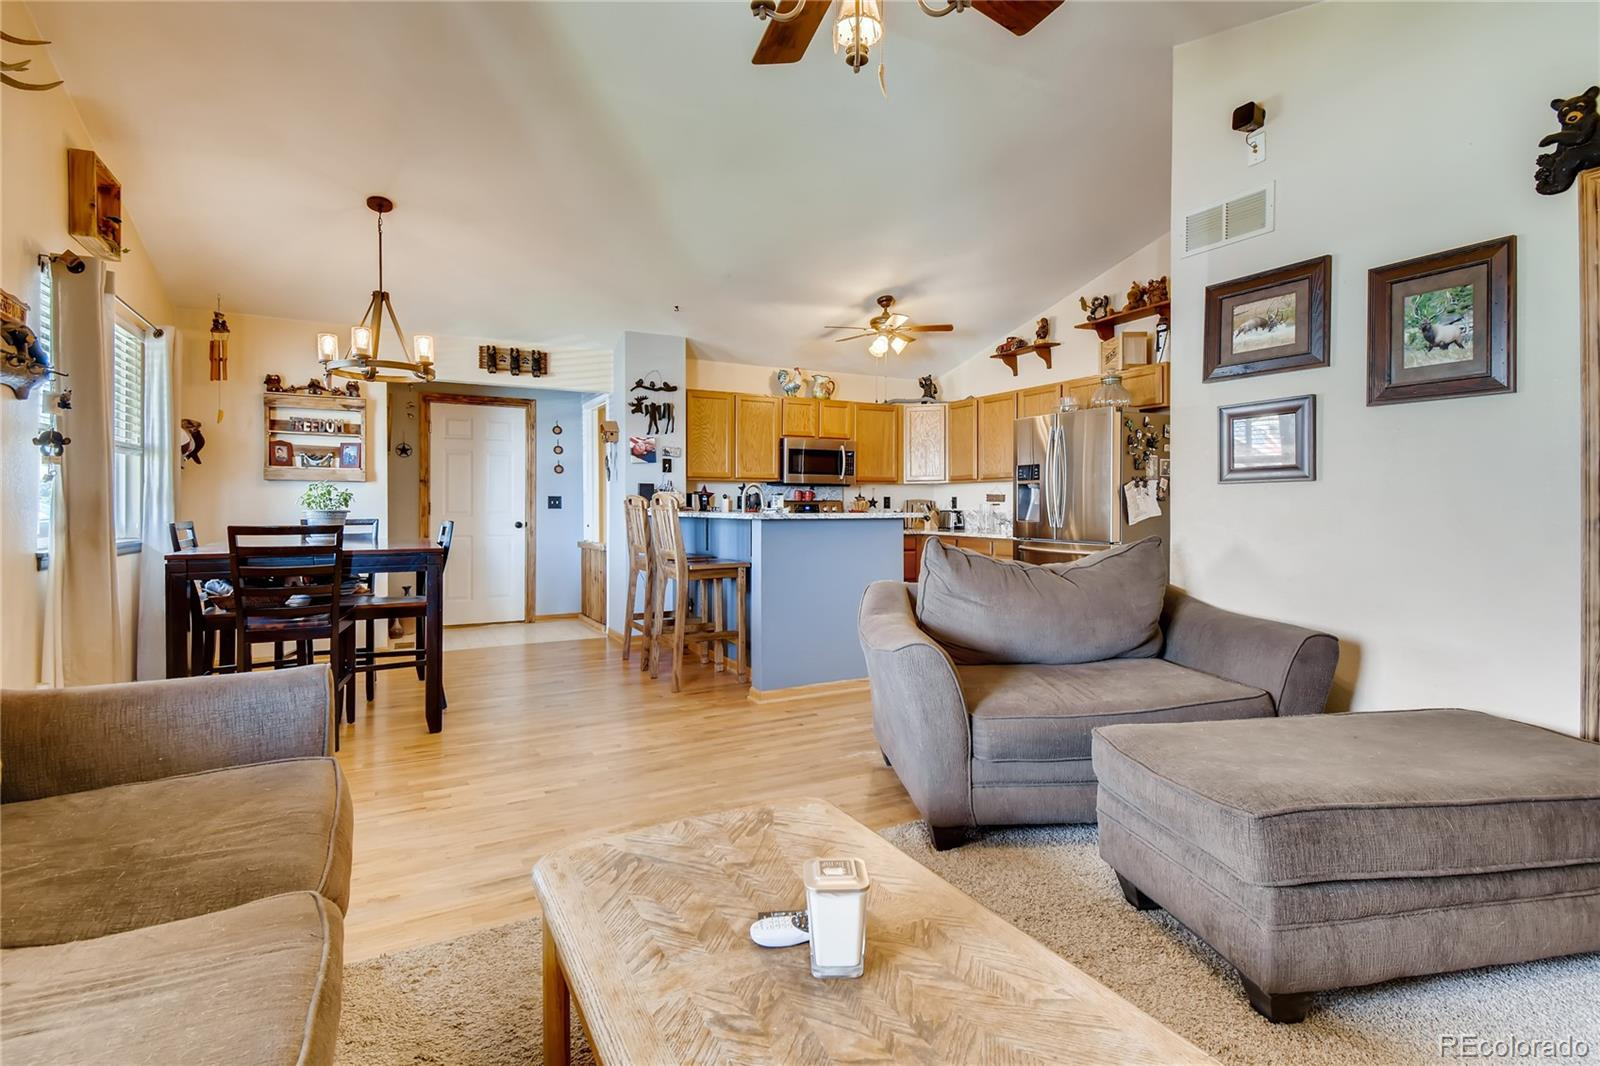 MLS# 3845561 - 6 - 524 Hawthorn Circle, Frederick, CO 80530